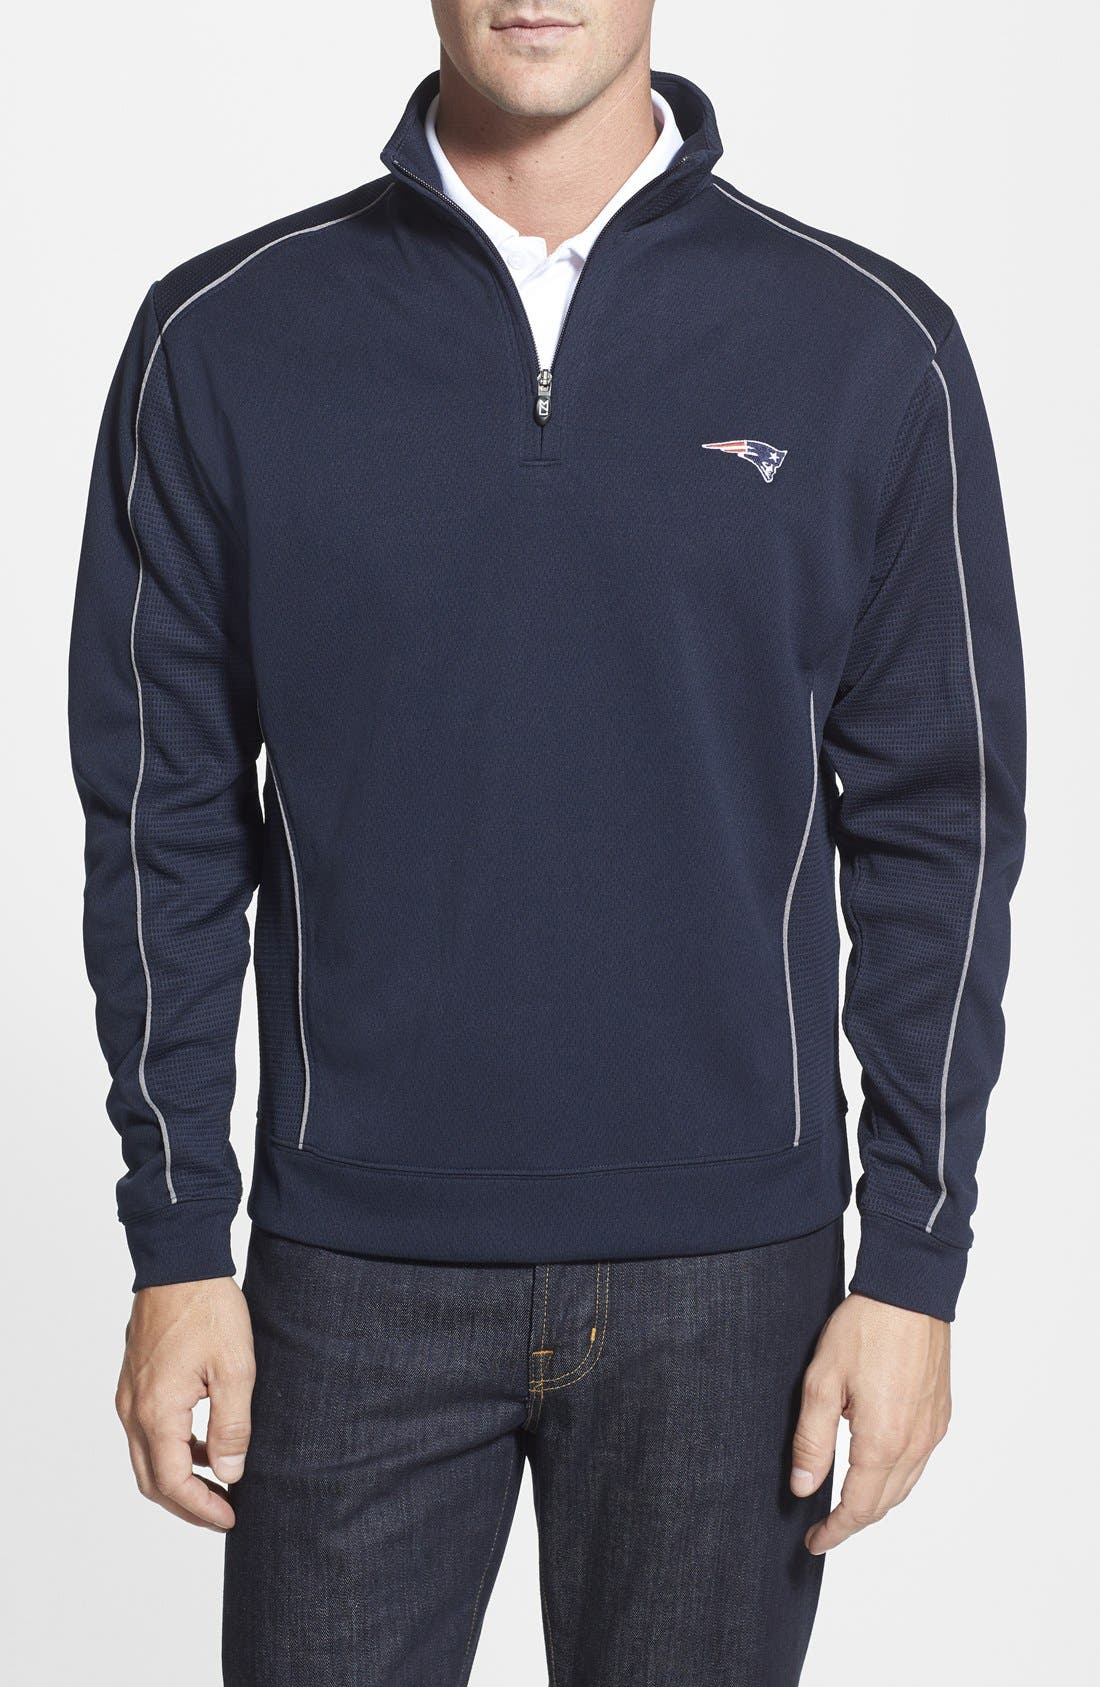 New England Patriots - Edge DryTec Moisture Wicking Half Zip Pullover,                         Main,                         color, Navy Blue